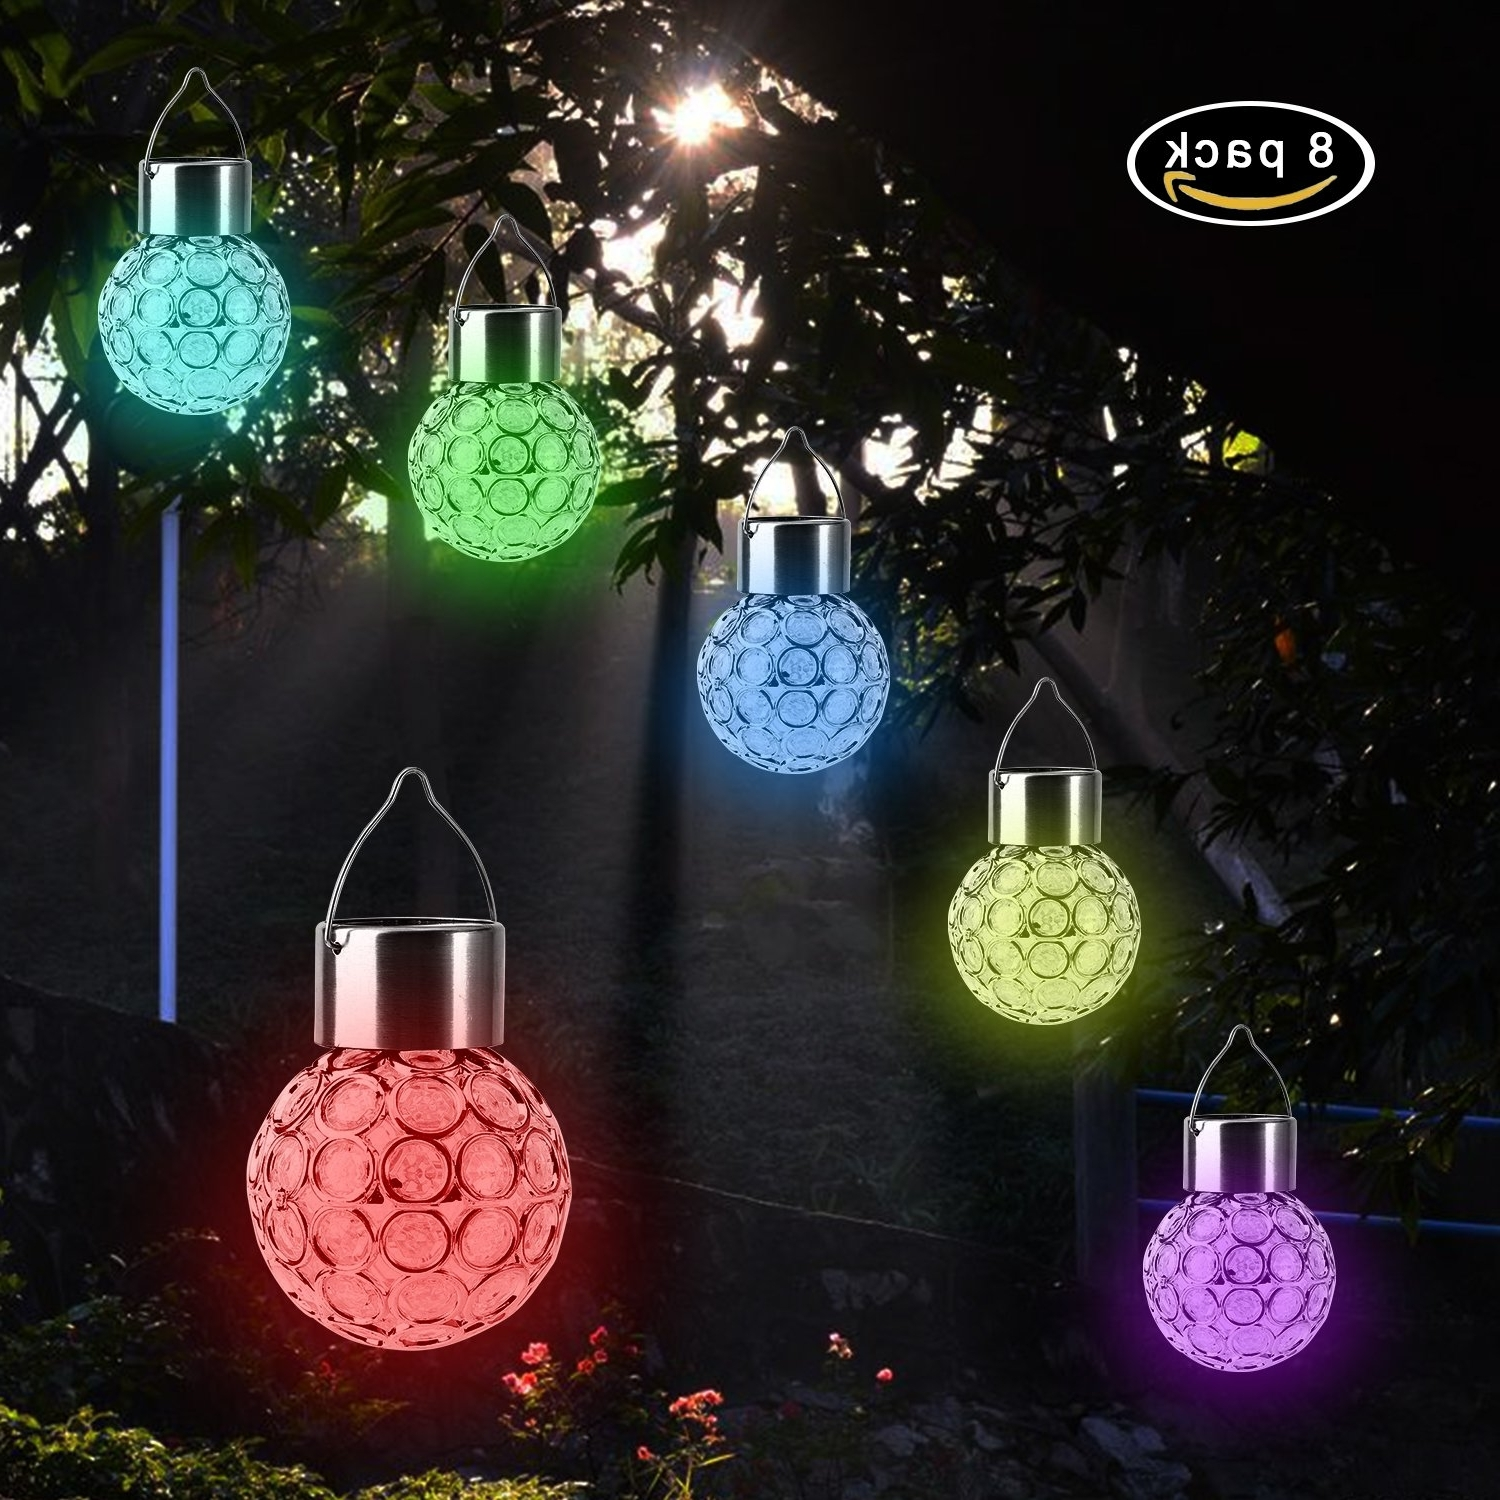 Garden Led Solar Hanging Lights Outdoor (8 Pack), Outdoor Hanging Within Most Recent Outdoor Hanging Nylon Lanterns (View 8 of 20)